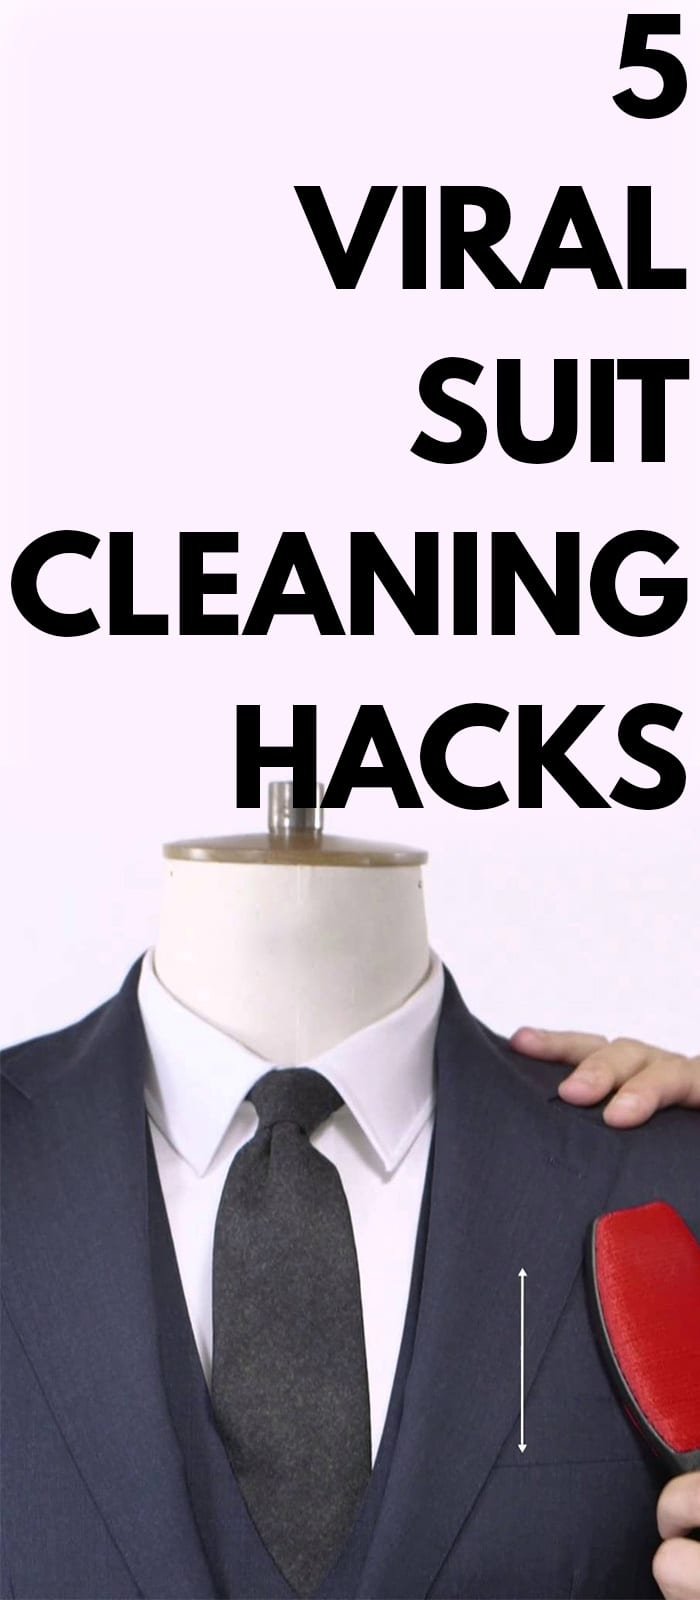 5 Viral Suit Cleaning Hacks!